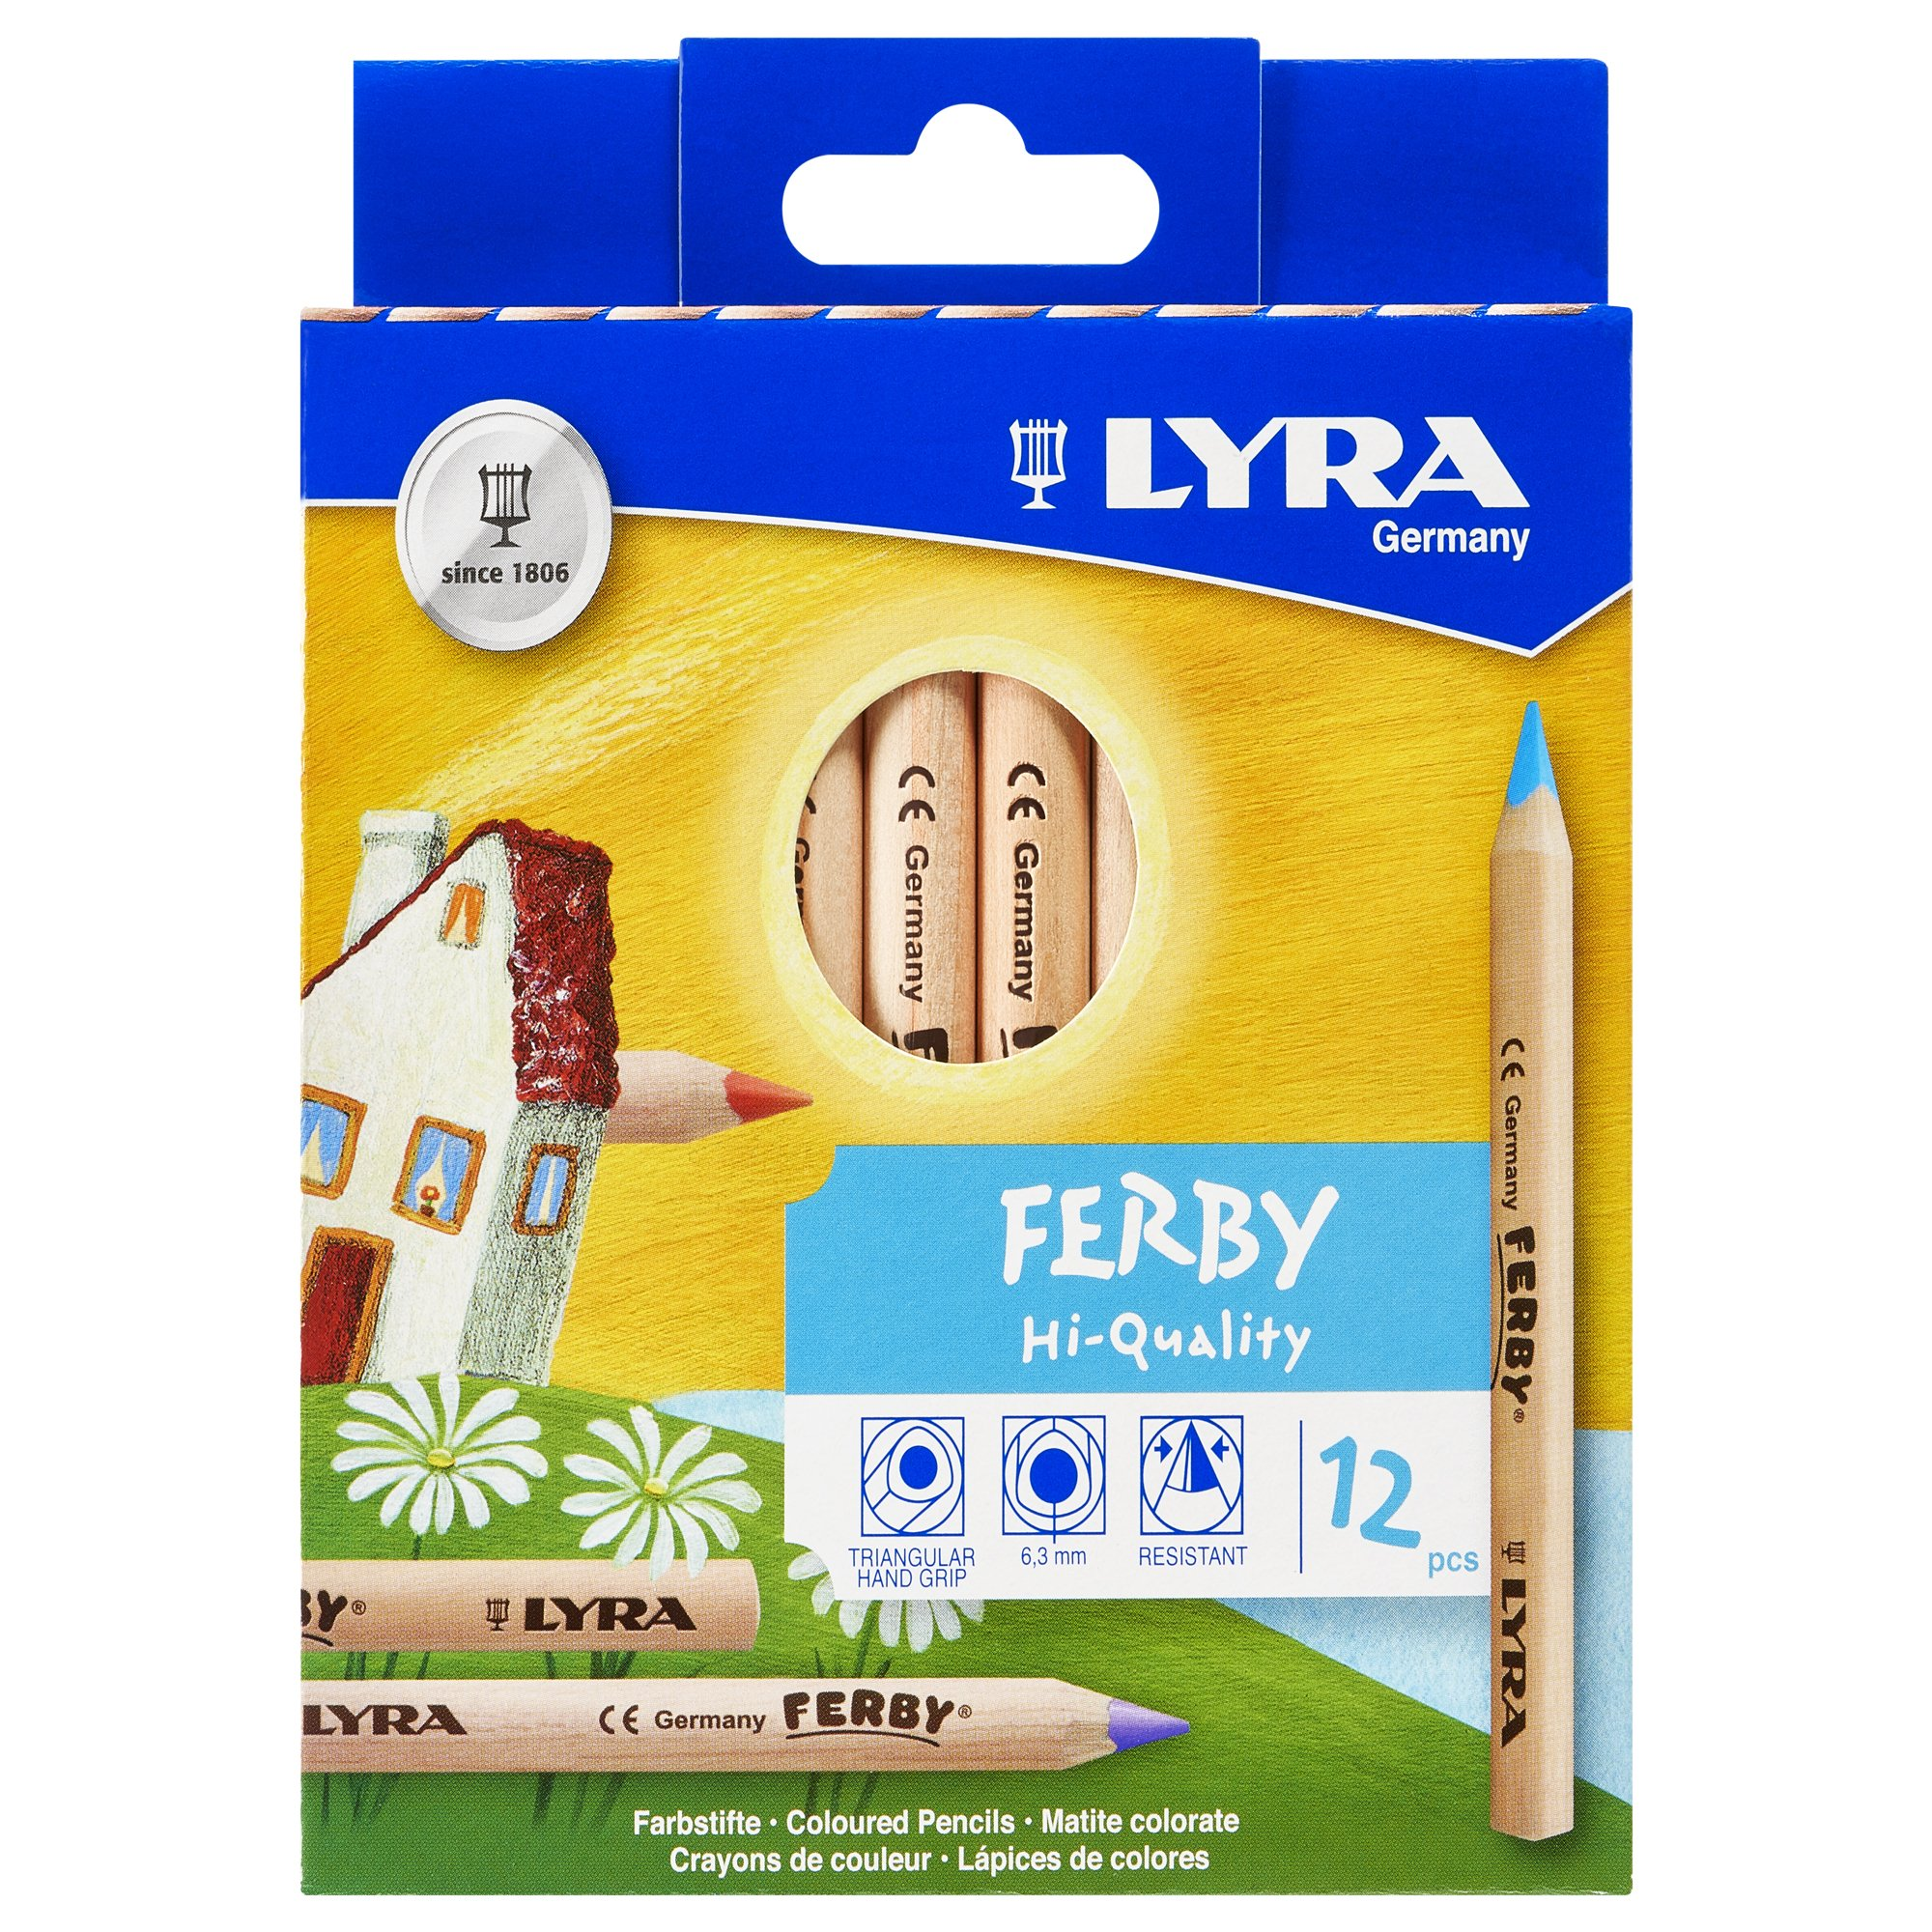 LYRA Ferby Giant Triangular Colored Pencils, Unlacquered, 6.25 Millimeter Cores, Assorted Colors, 12 Count (3611120) by Lyra